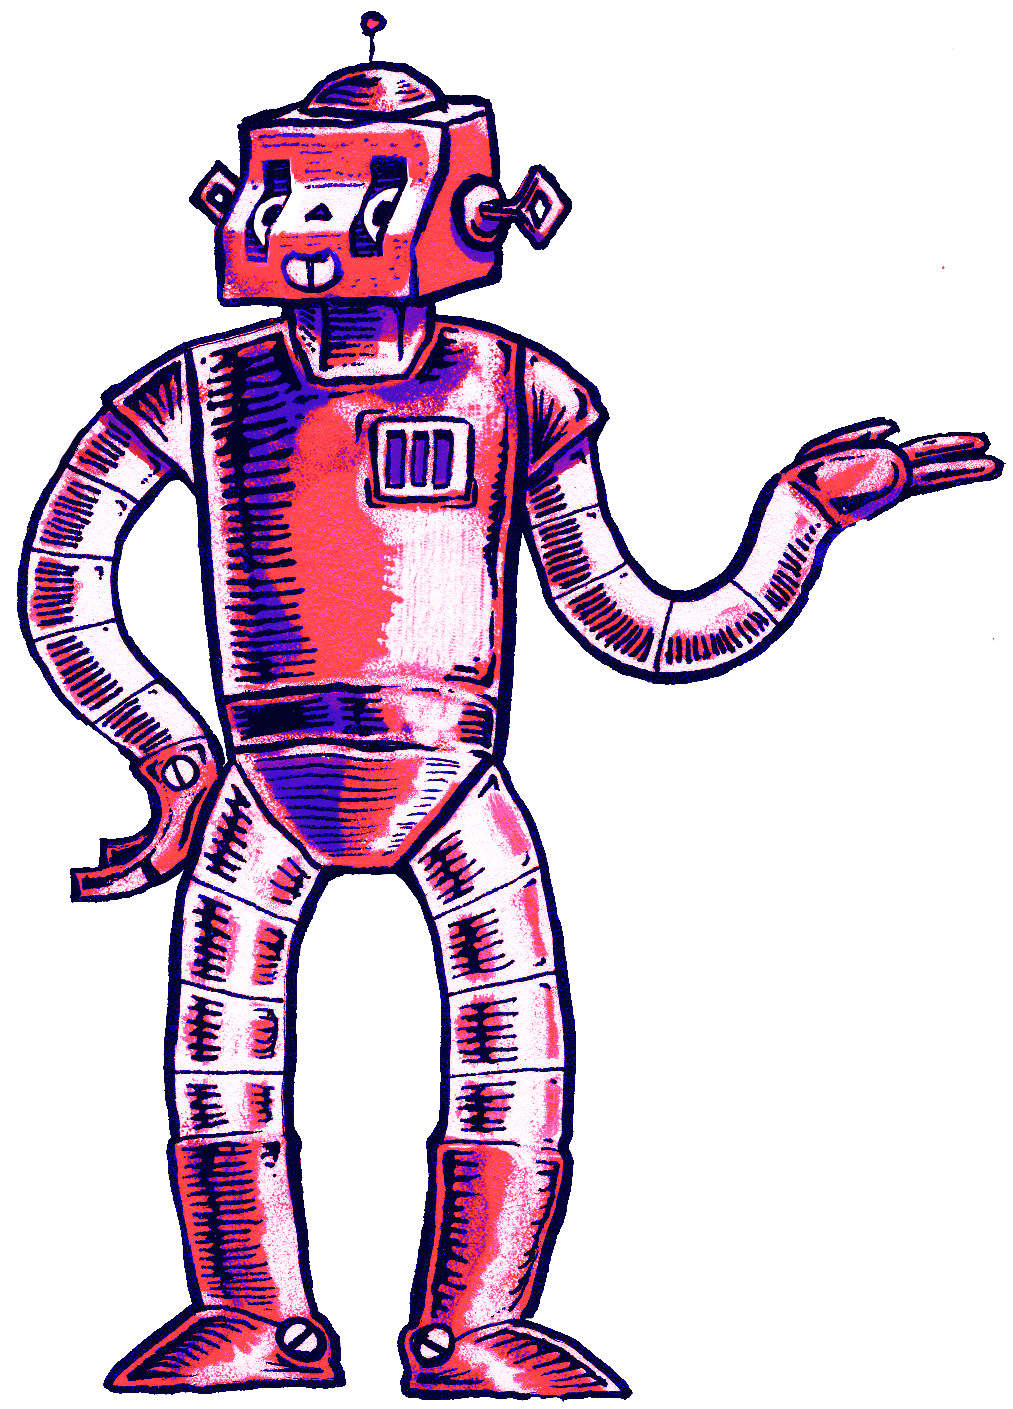 robot_icon_03.png